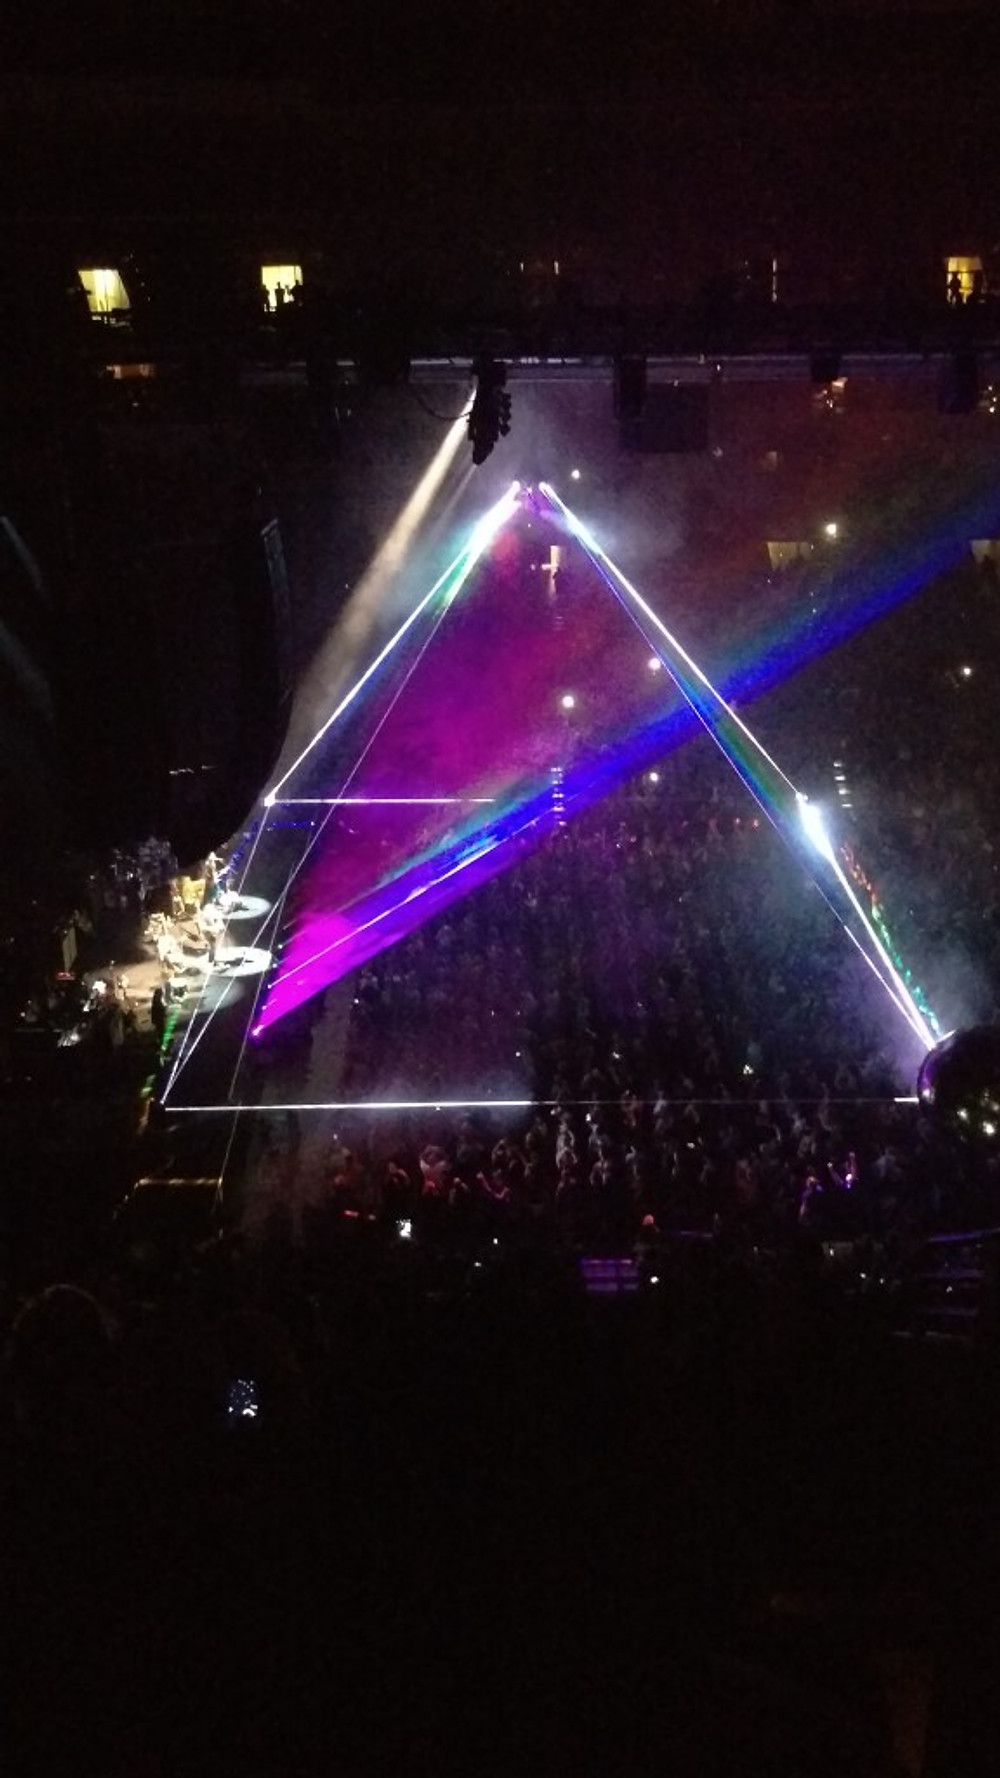 """A picture of the """"Pink Floyd pyramid"""" in lights during the Roger Waters show."""